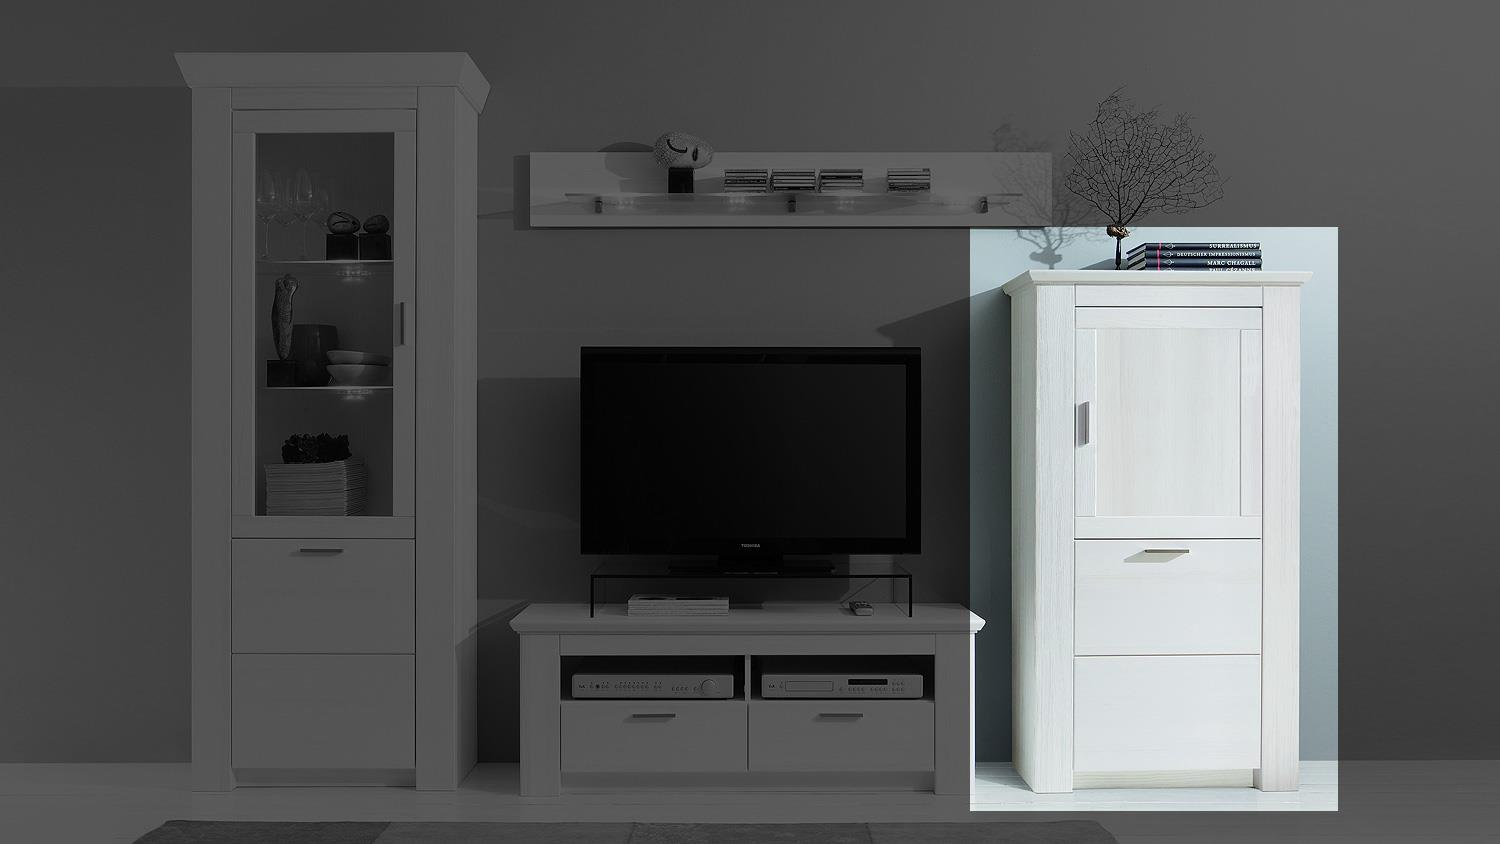 landhaus schrank weiss tv rack selber bauen mobel selbst schrank weis holz landhaus schranke. Black Bedroom Furniture Sets. Home Design Ideas